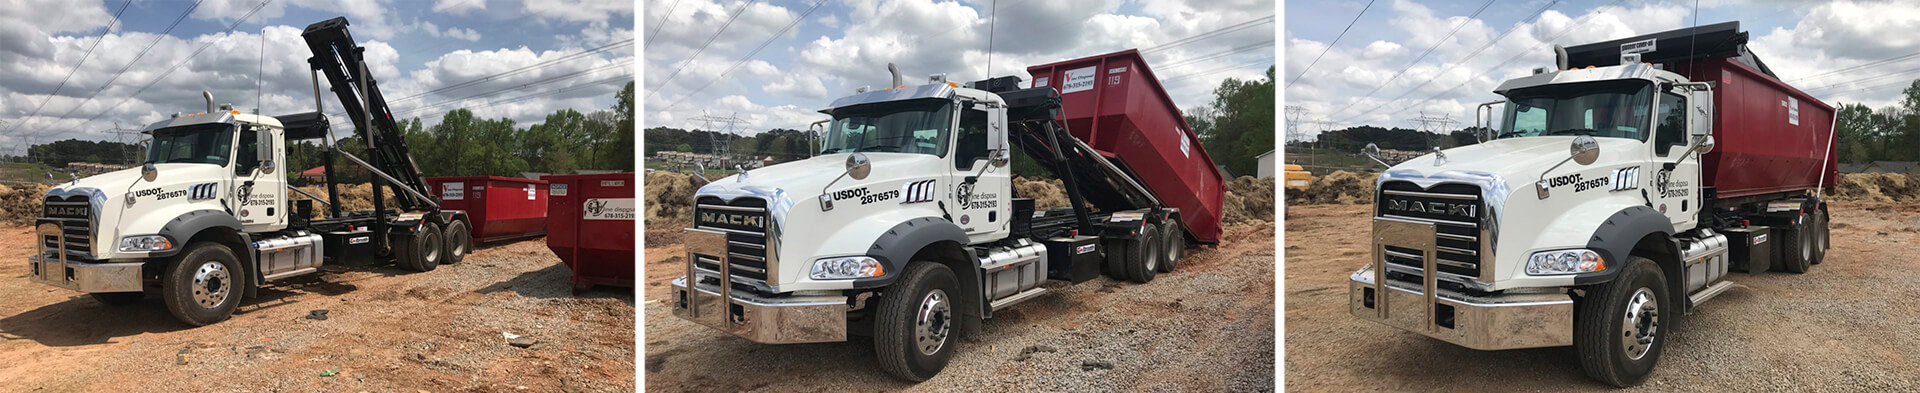 Dumpster rental in Adamsville